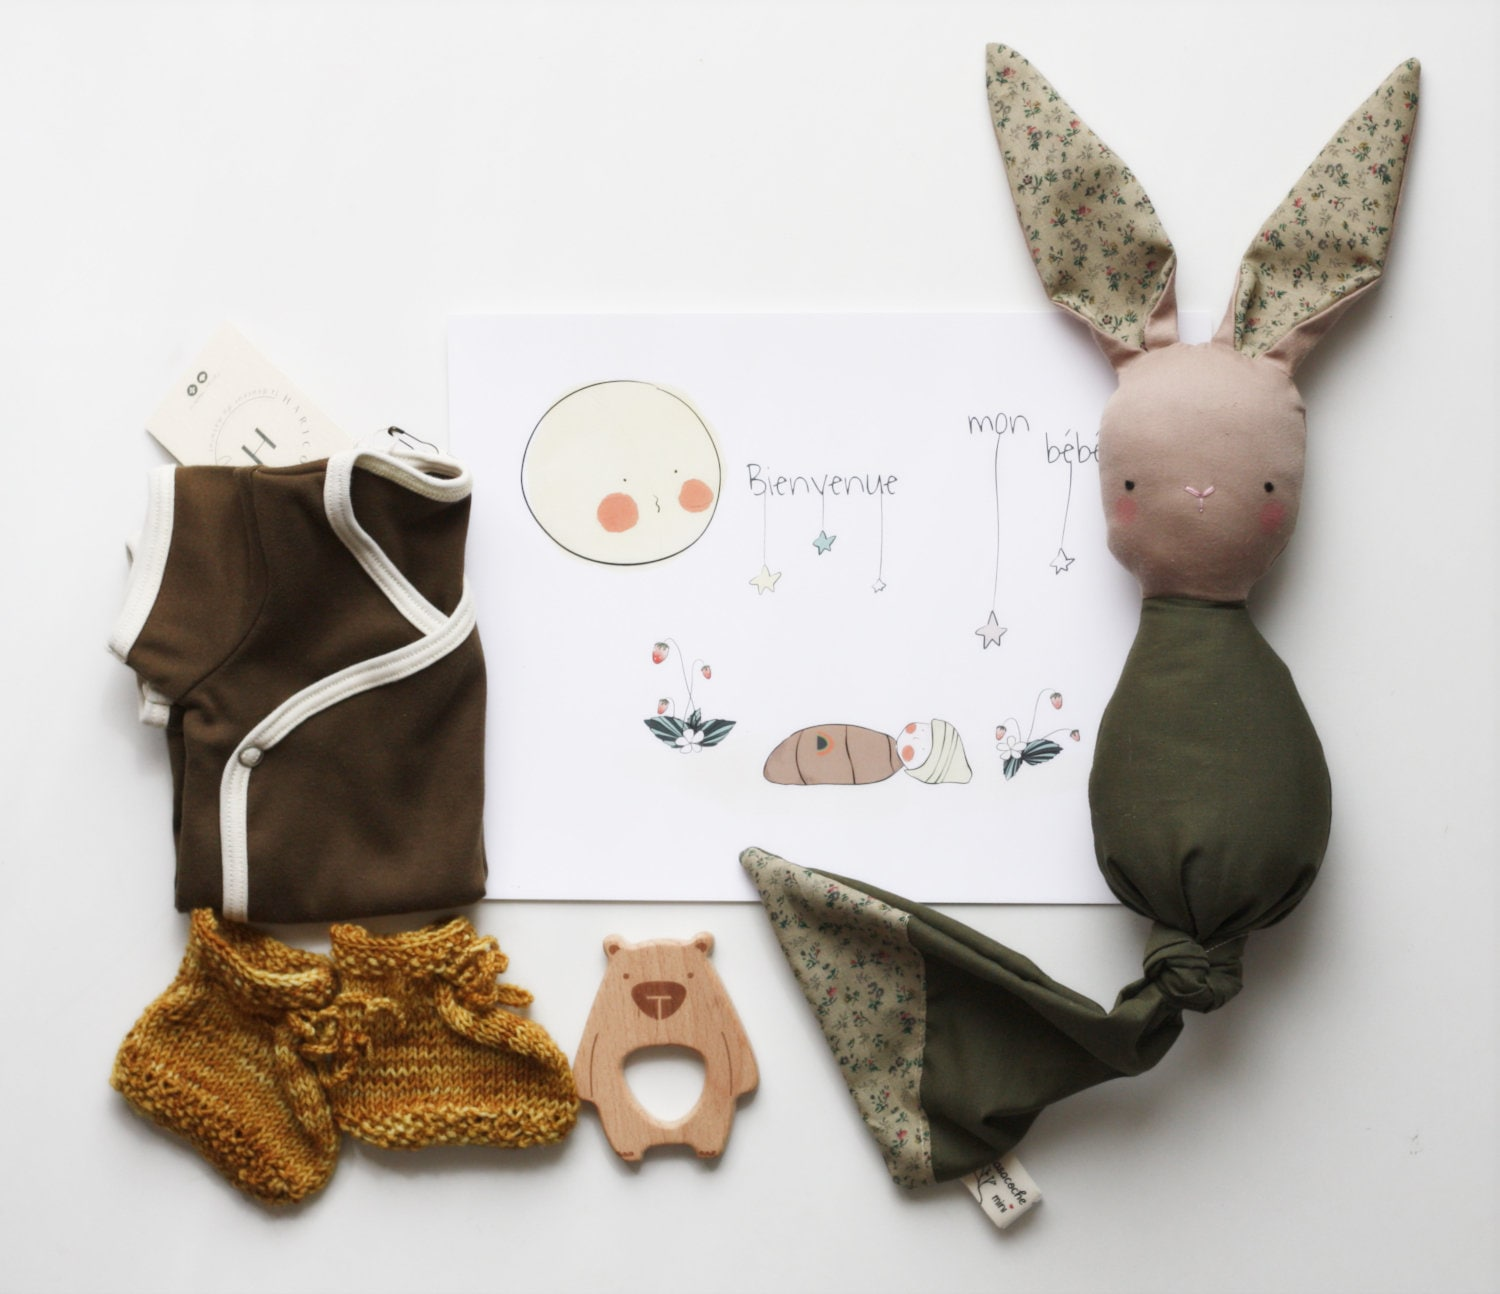 Baby Shower Cadeau Futur Maman boite cadeau bébé, baby shower gift, unisexe gift box, bunny lovey,wooden  teether, organic cotton onesie, illustration, knitted slippers